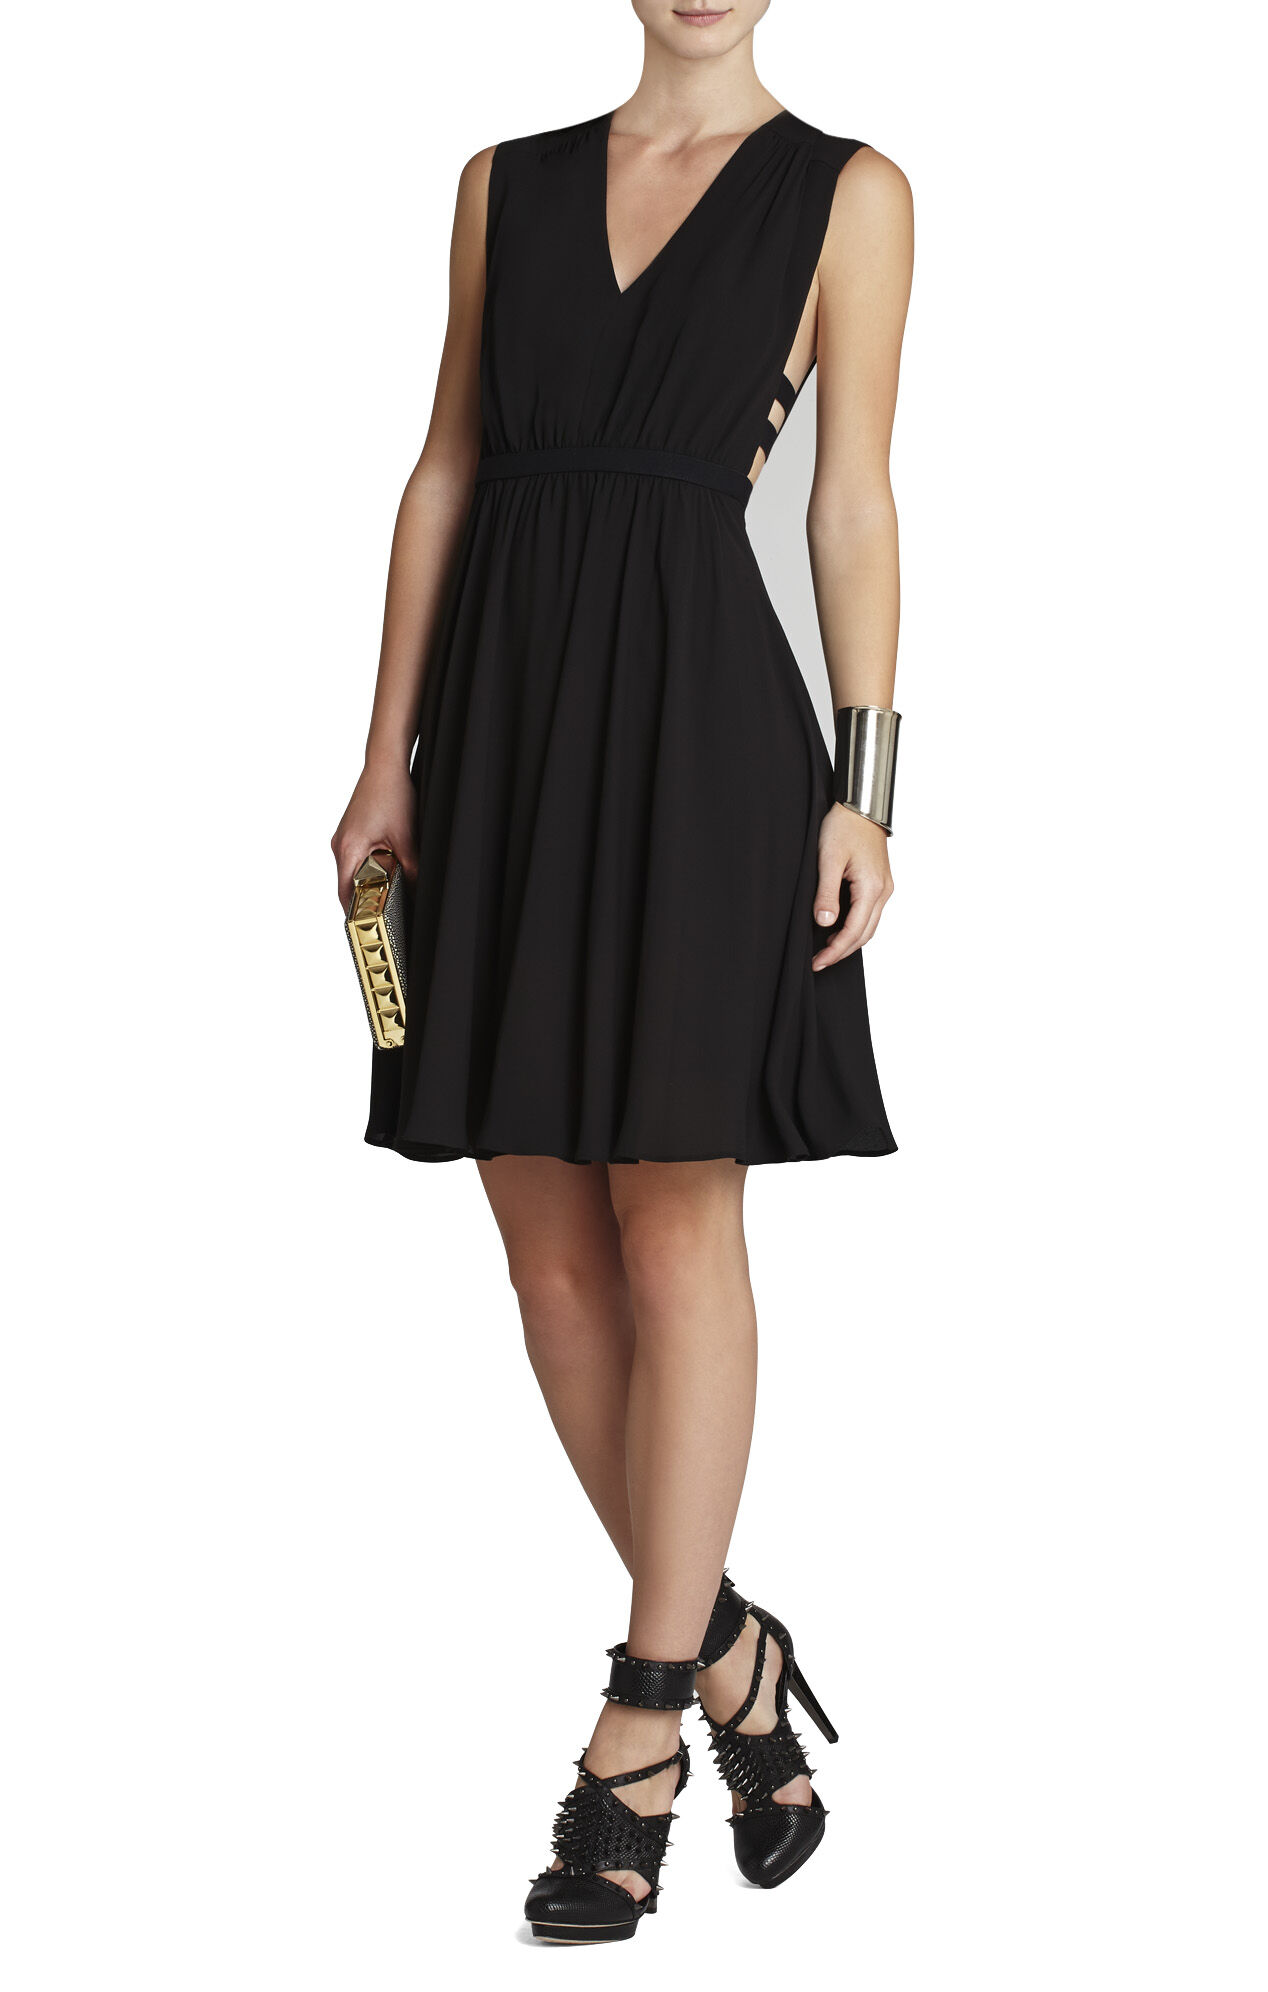 Rachel Gathered-Waist Sleeveless Dress